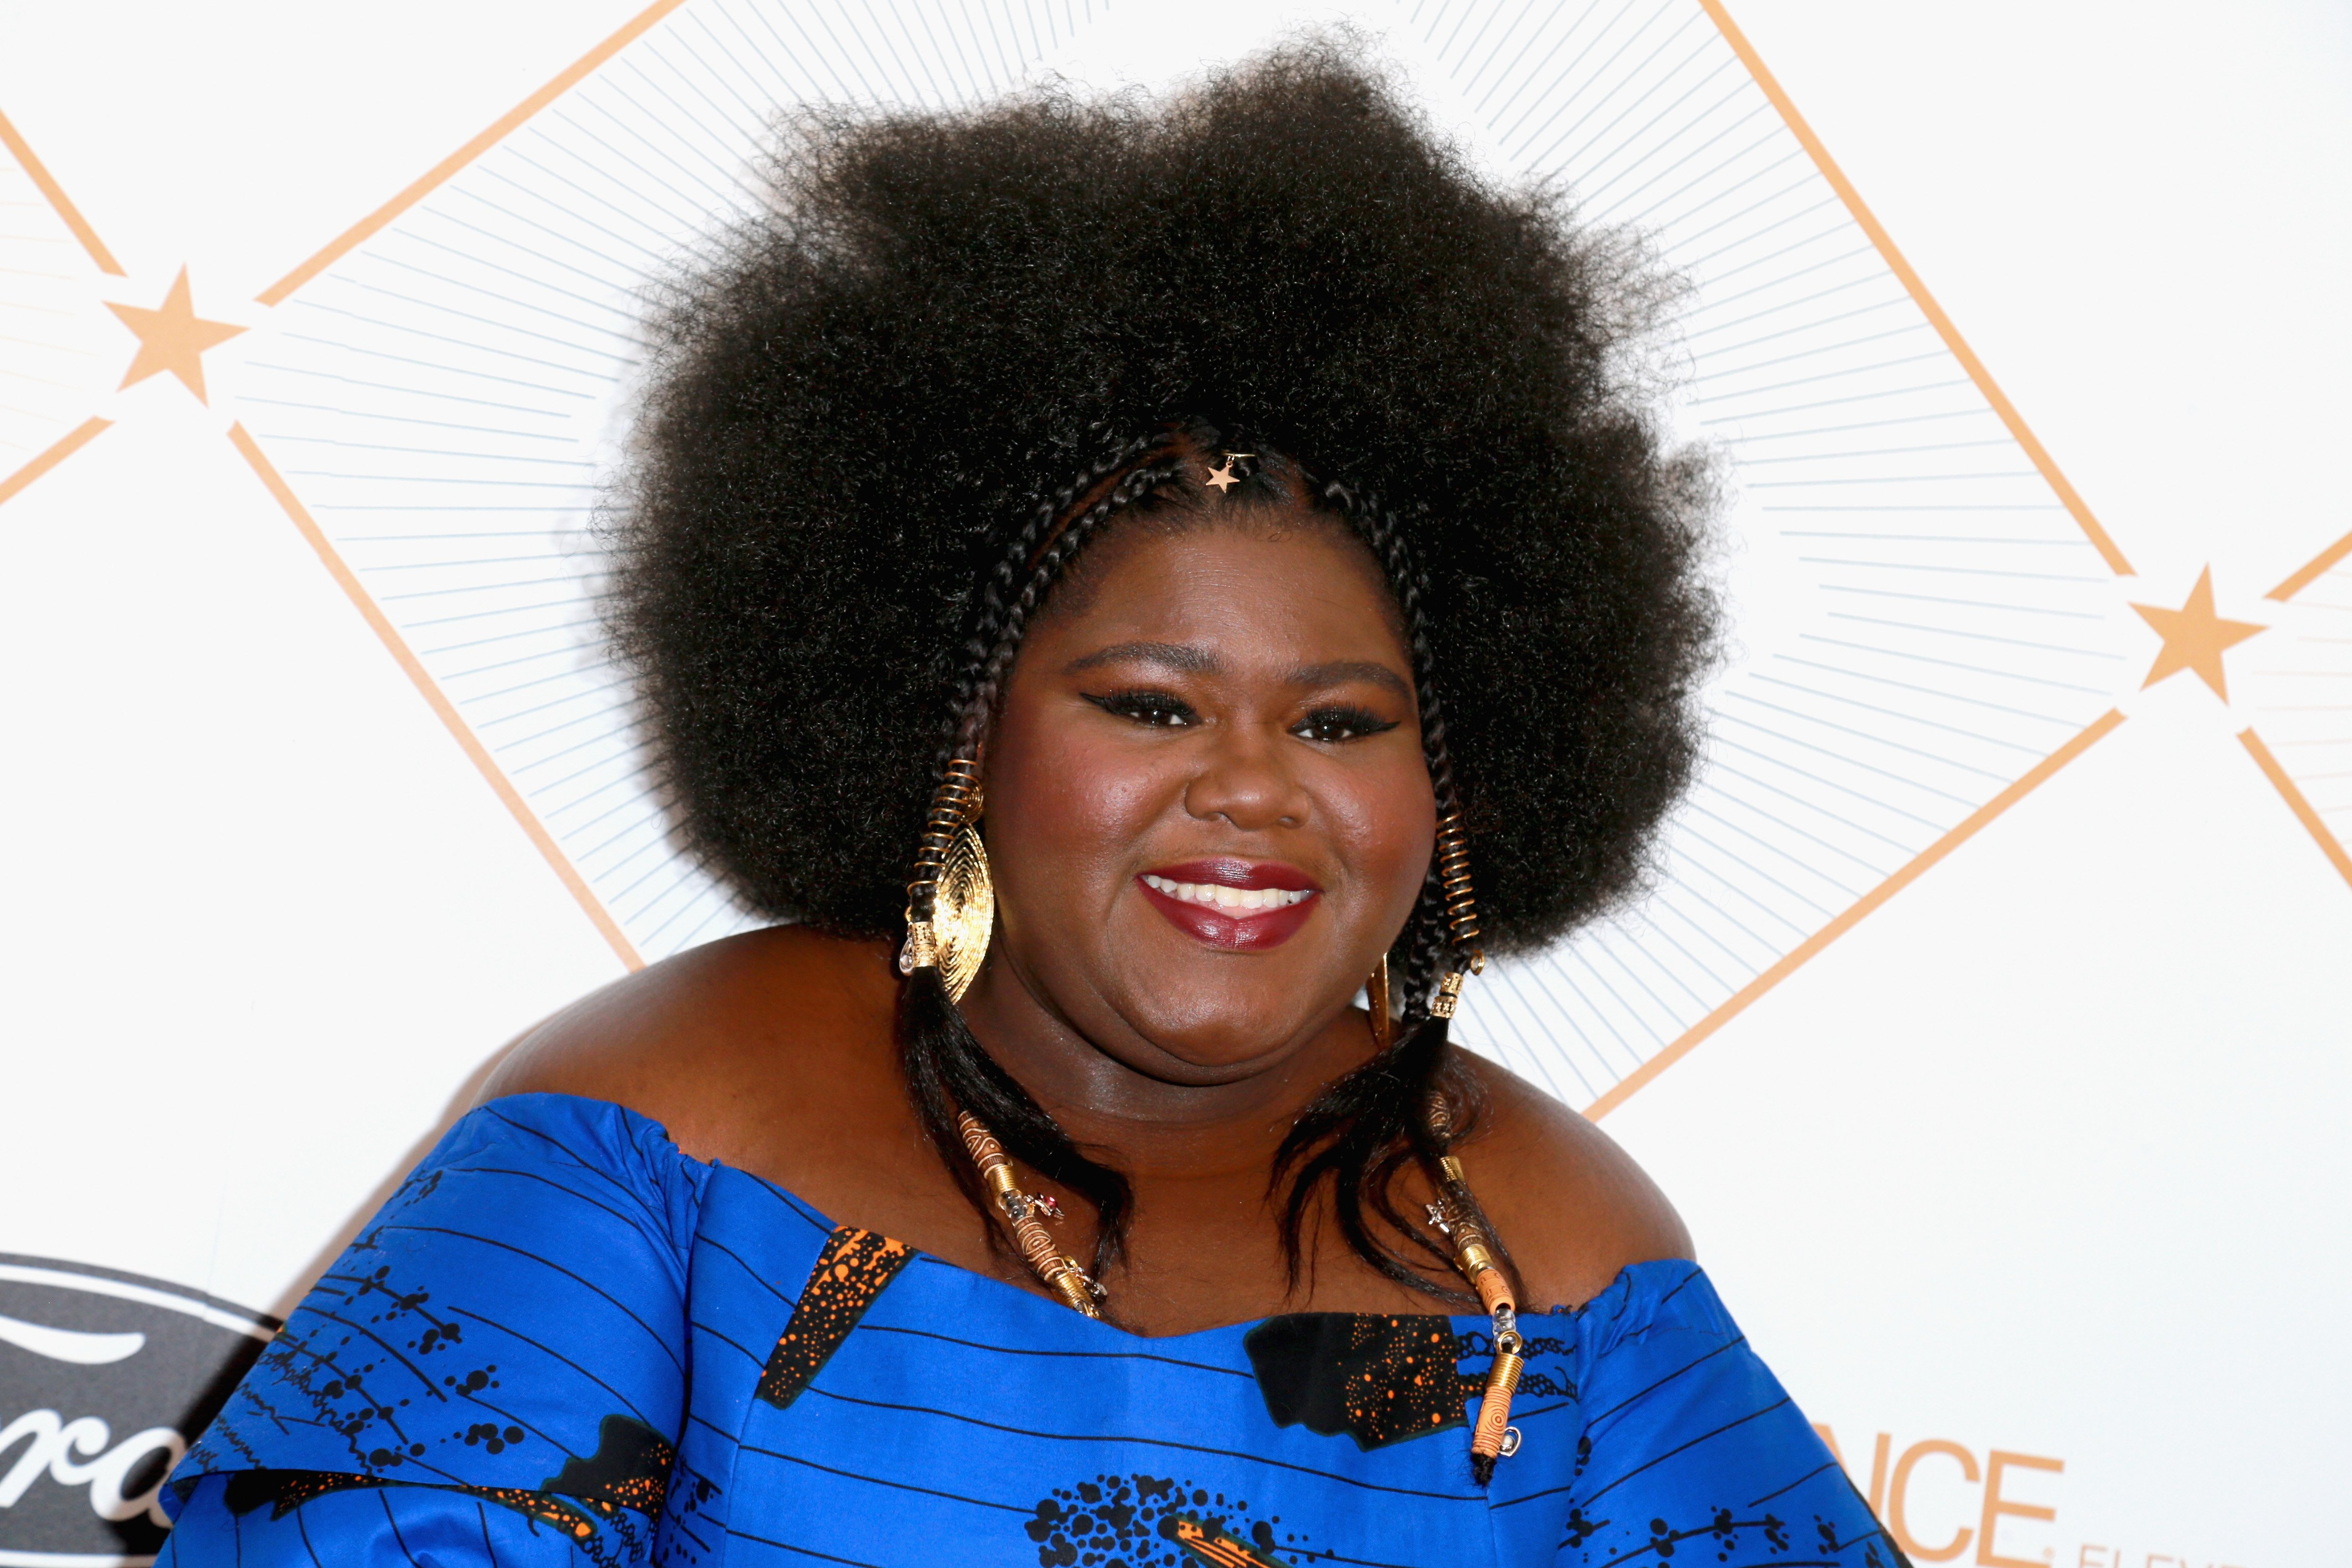 Gabourey Sidibe poses at the 2018 Essence Black Women In Hollywood Oscars Luncheon on March 1, 2018 in Beverly Hills, California. | Source: Getty Images